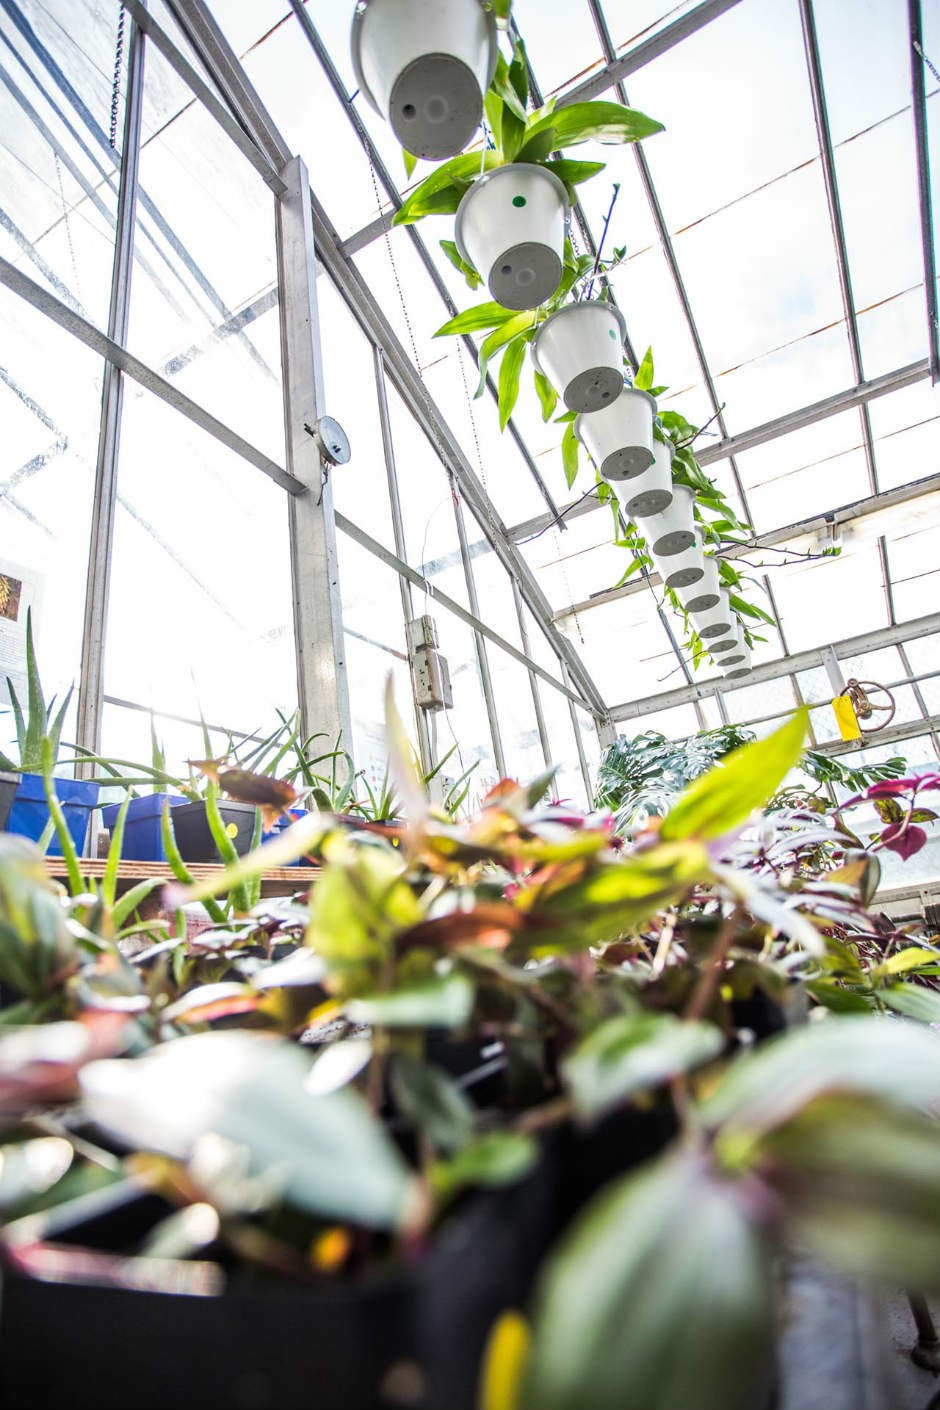 The Concordia University greenhouse is just one in a slew of urban horticulture projects in Montreal.